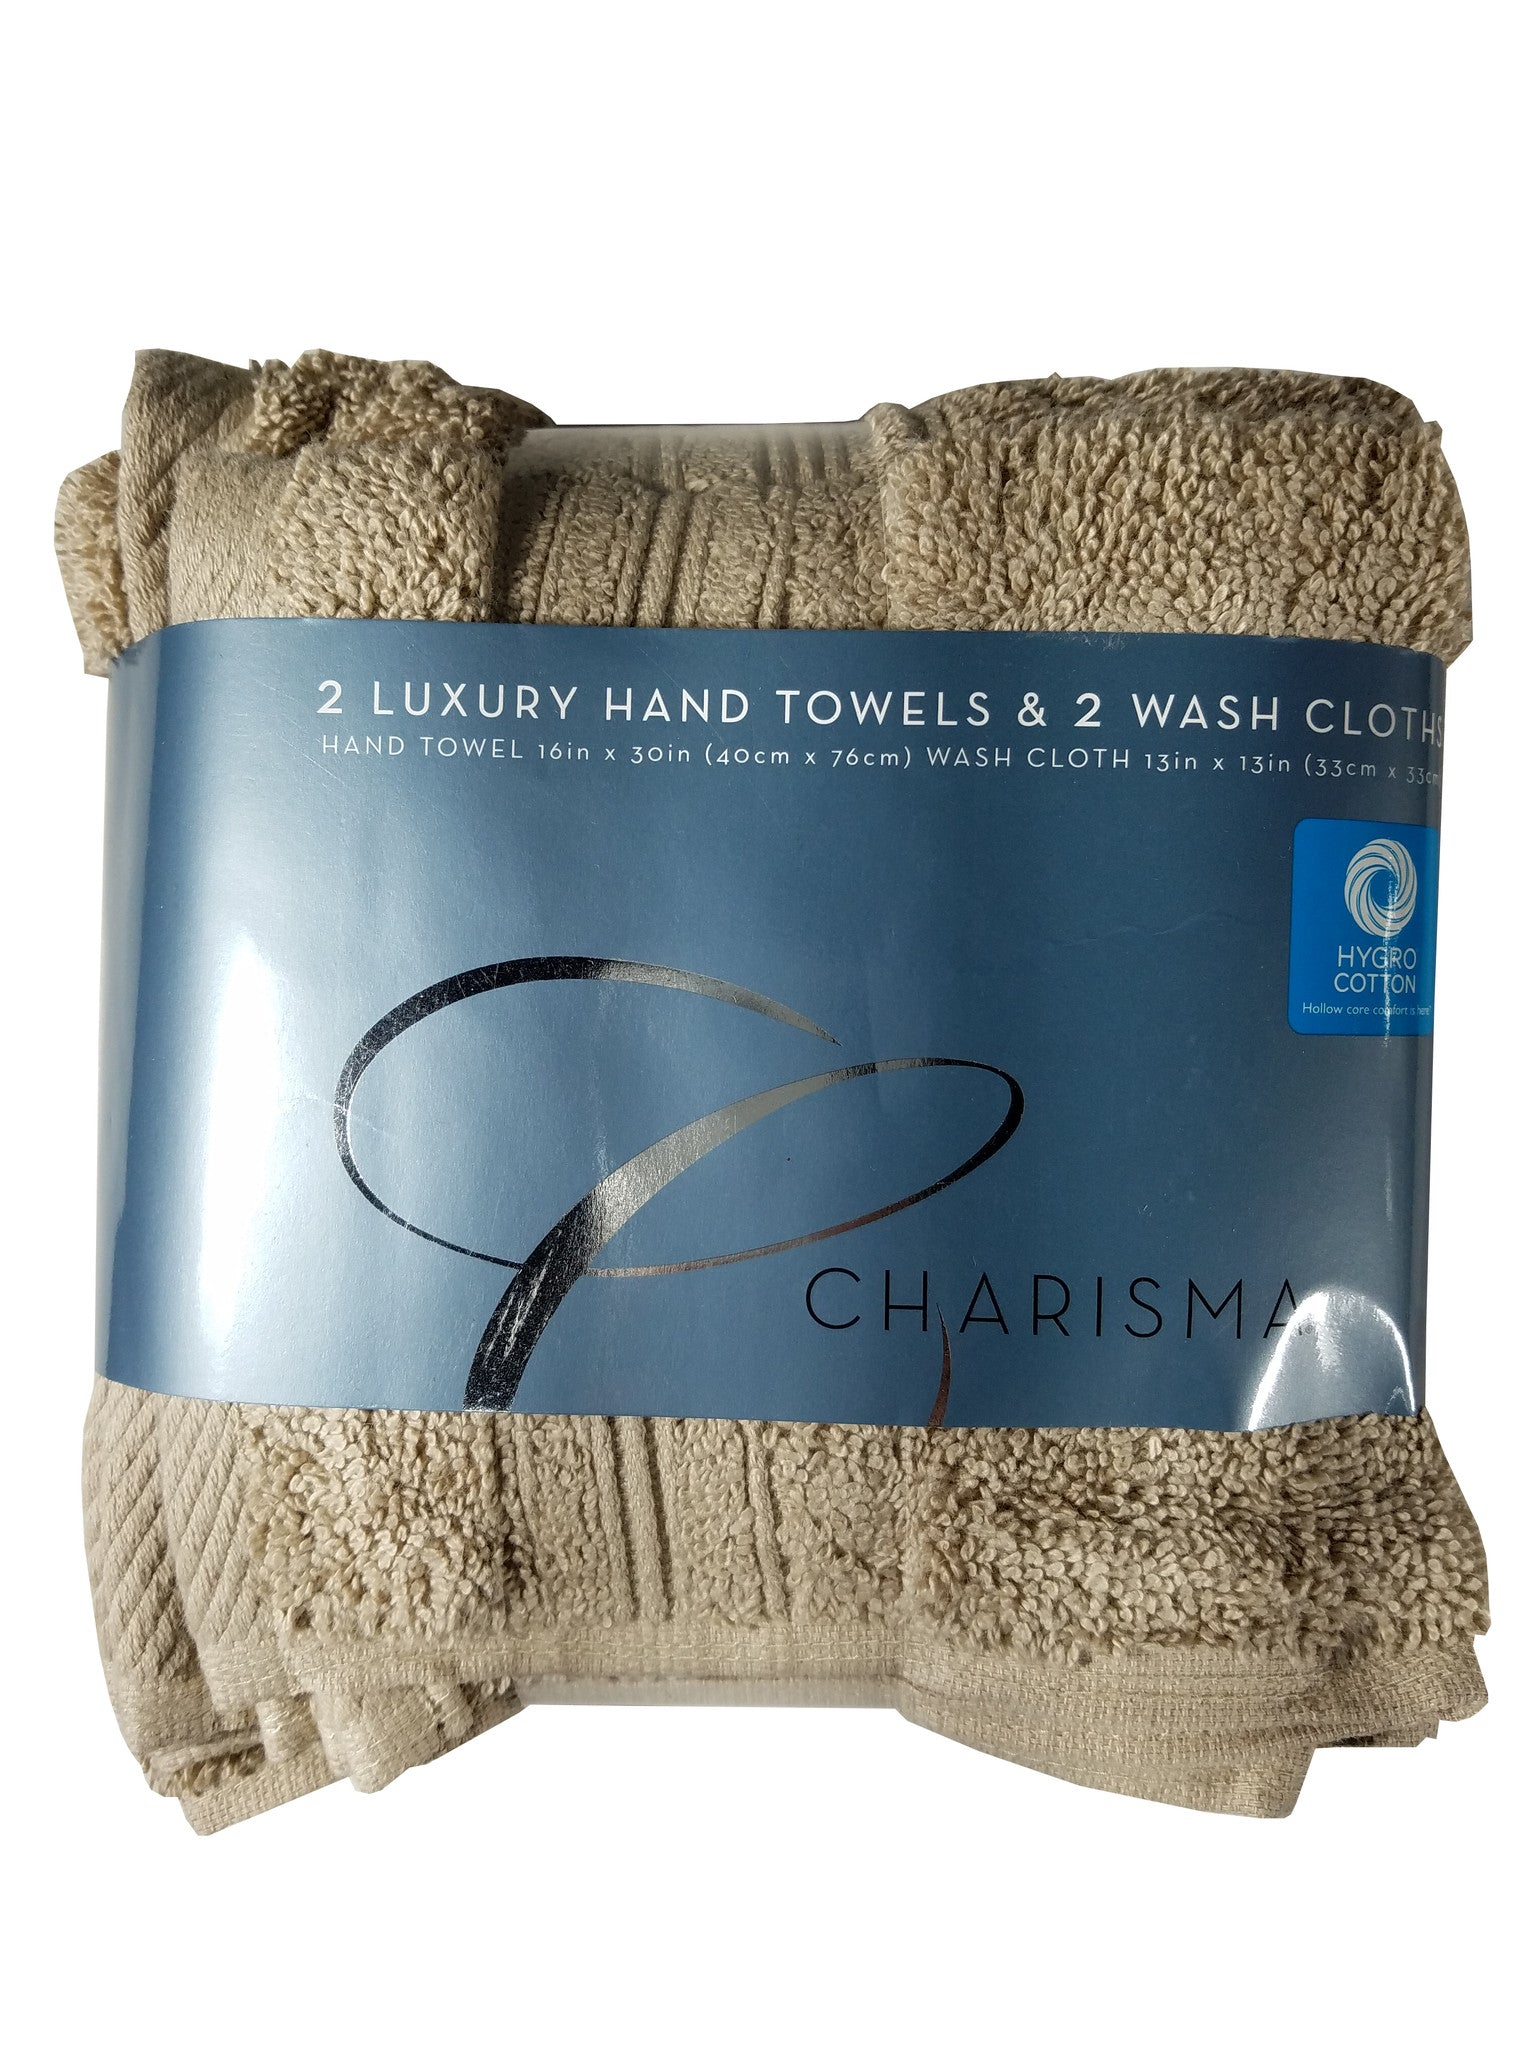 Charisma Luxury Towels 2-Hand Towels 2-Wash Cloths 100% Hygro Cotton 4 Pack [Khaki]